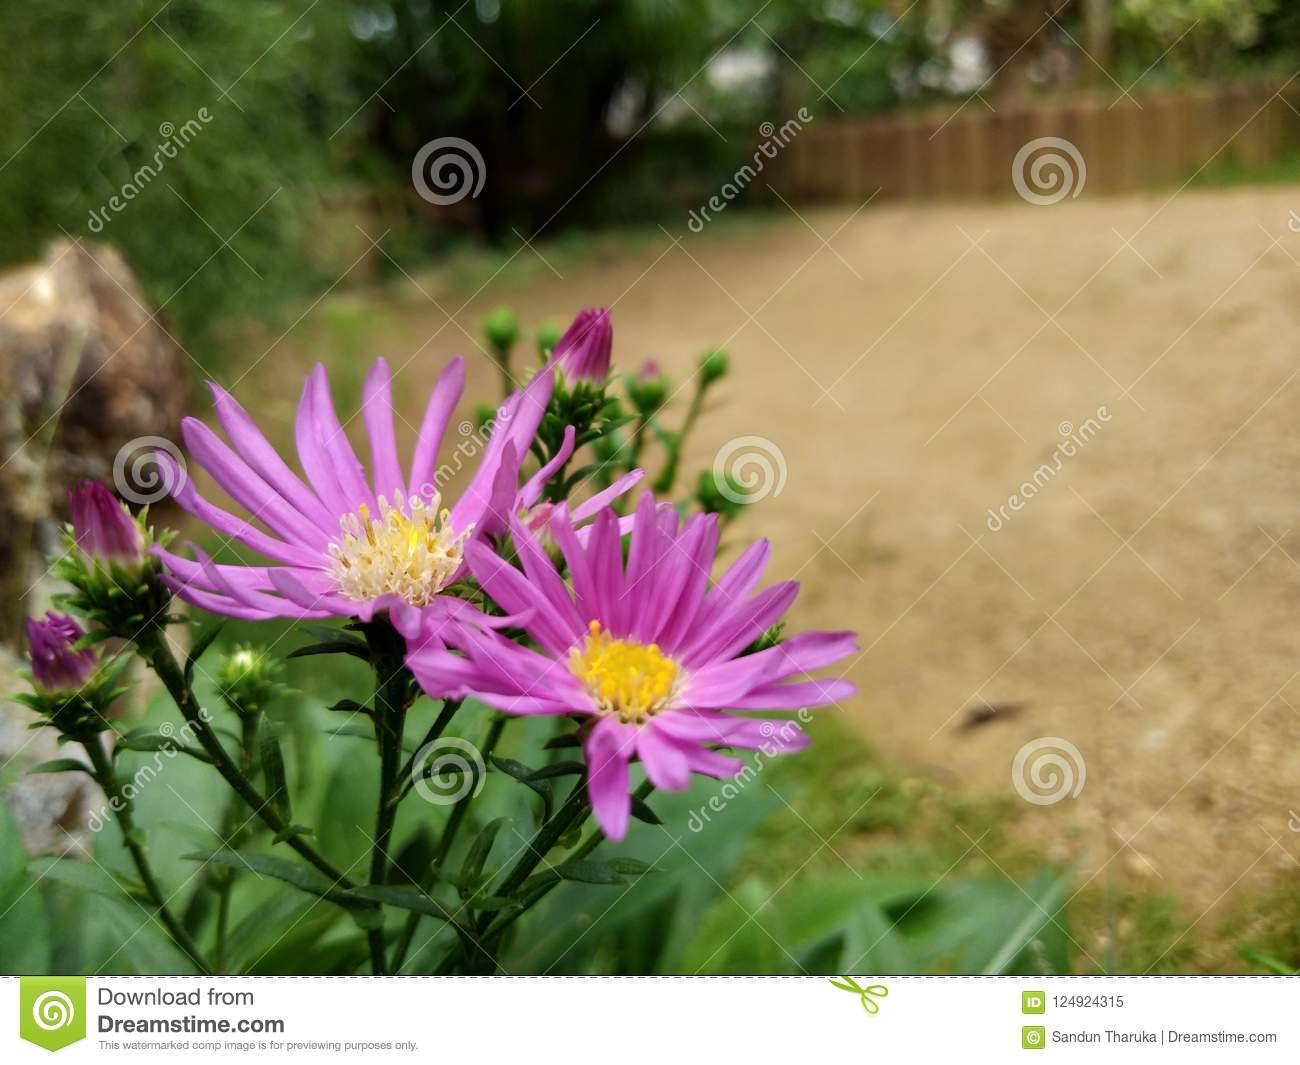 Download beautiful flowers in sri lanka stock image image of bodhi photo about nice natural photos of sri lanka e most beautiful sightce red color flower image of natural white pink rose gold yellow colors izmirmasajfo